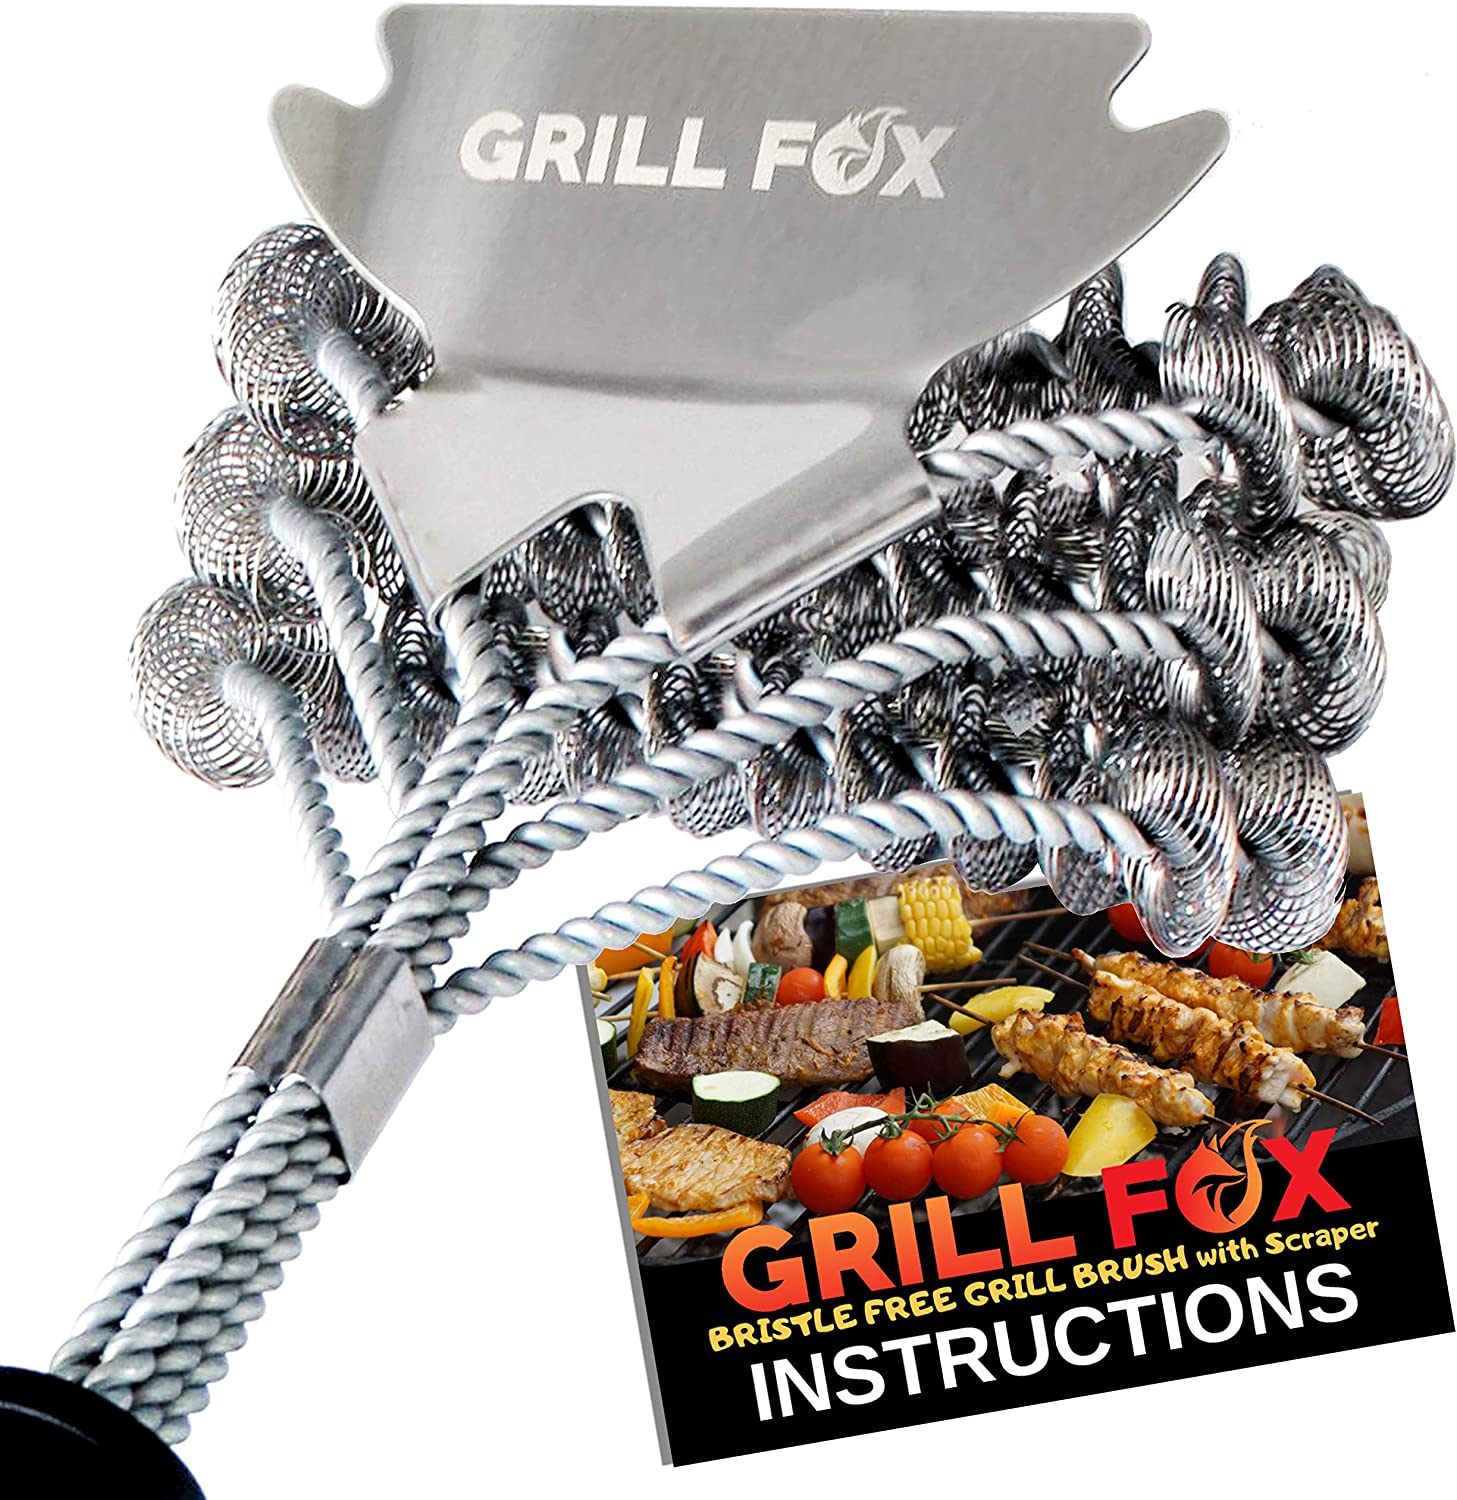 "GRILL FOX Grill Brush Bristle Free – Safe BBQ Cleaner with Scraper – Durable 18"" Stainless Steel Scrubber for Cleaning Gas and Charcoal Barbecue Grates and Grills - Grilling Accessories Tool Gift"